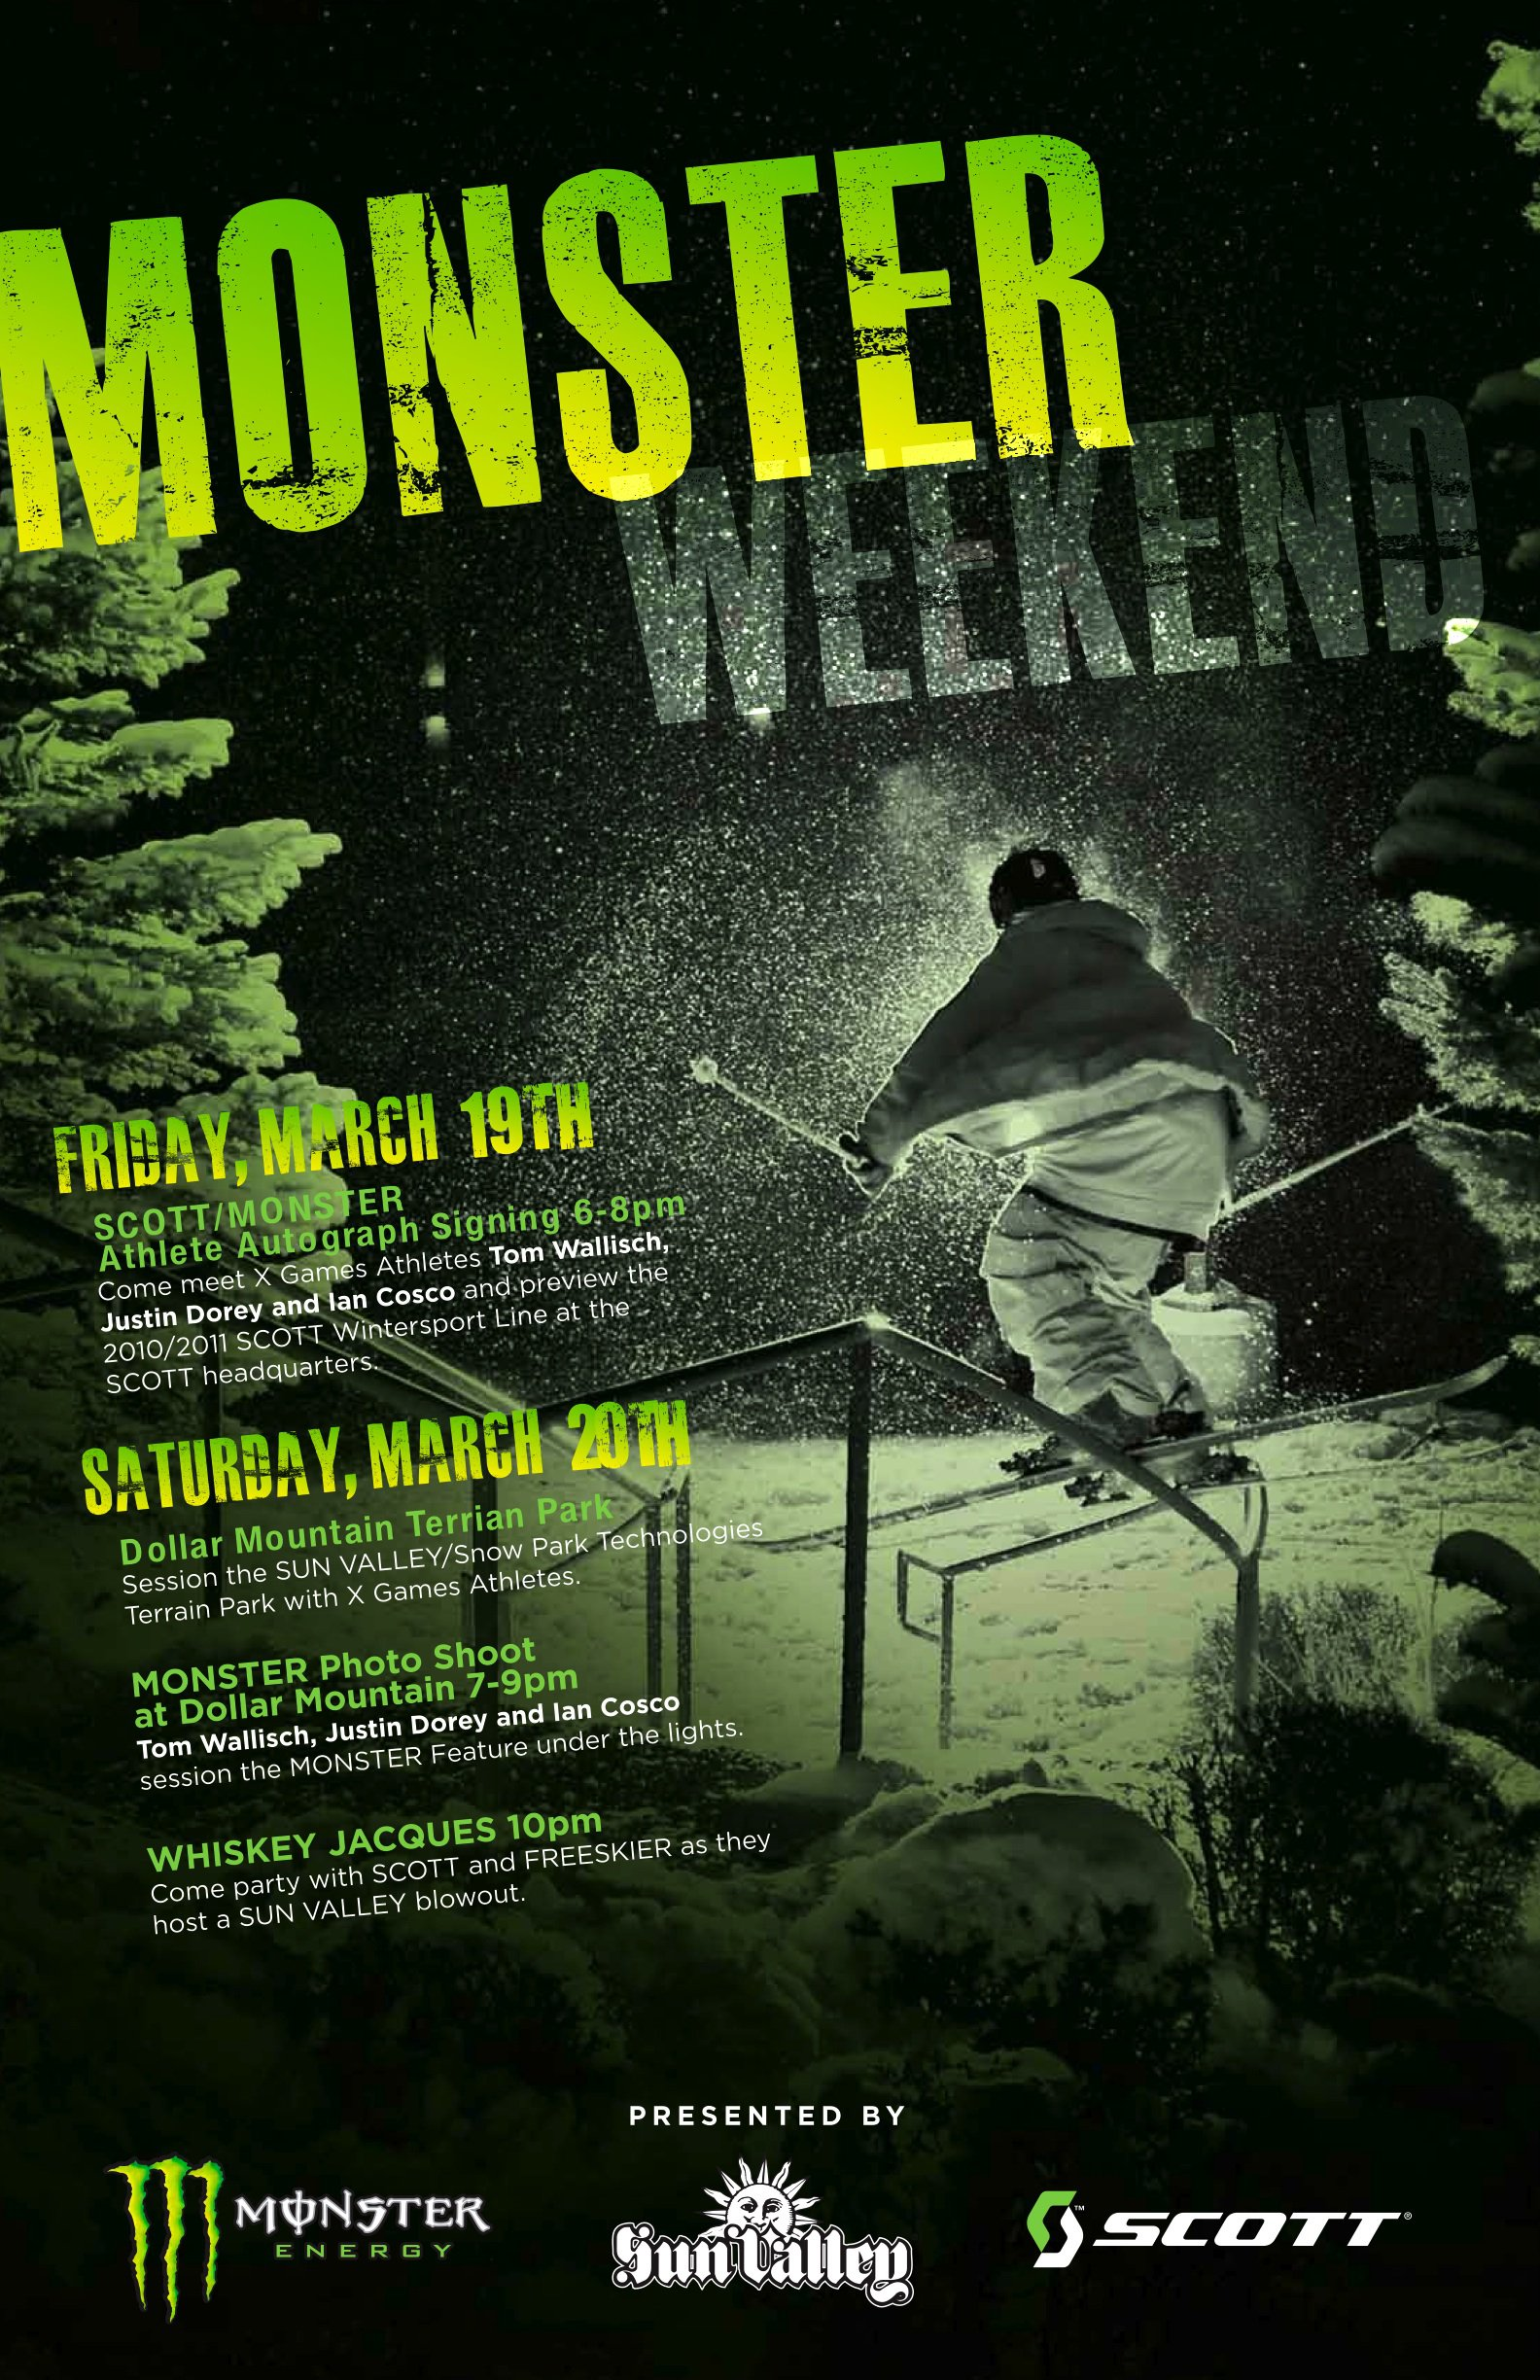 MONSTER Weekend Rolls into Sun Valley, ID